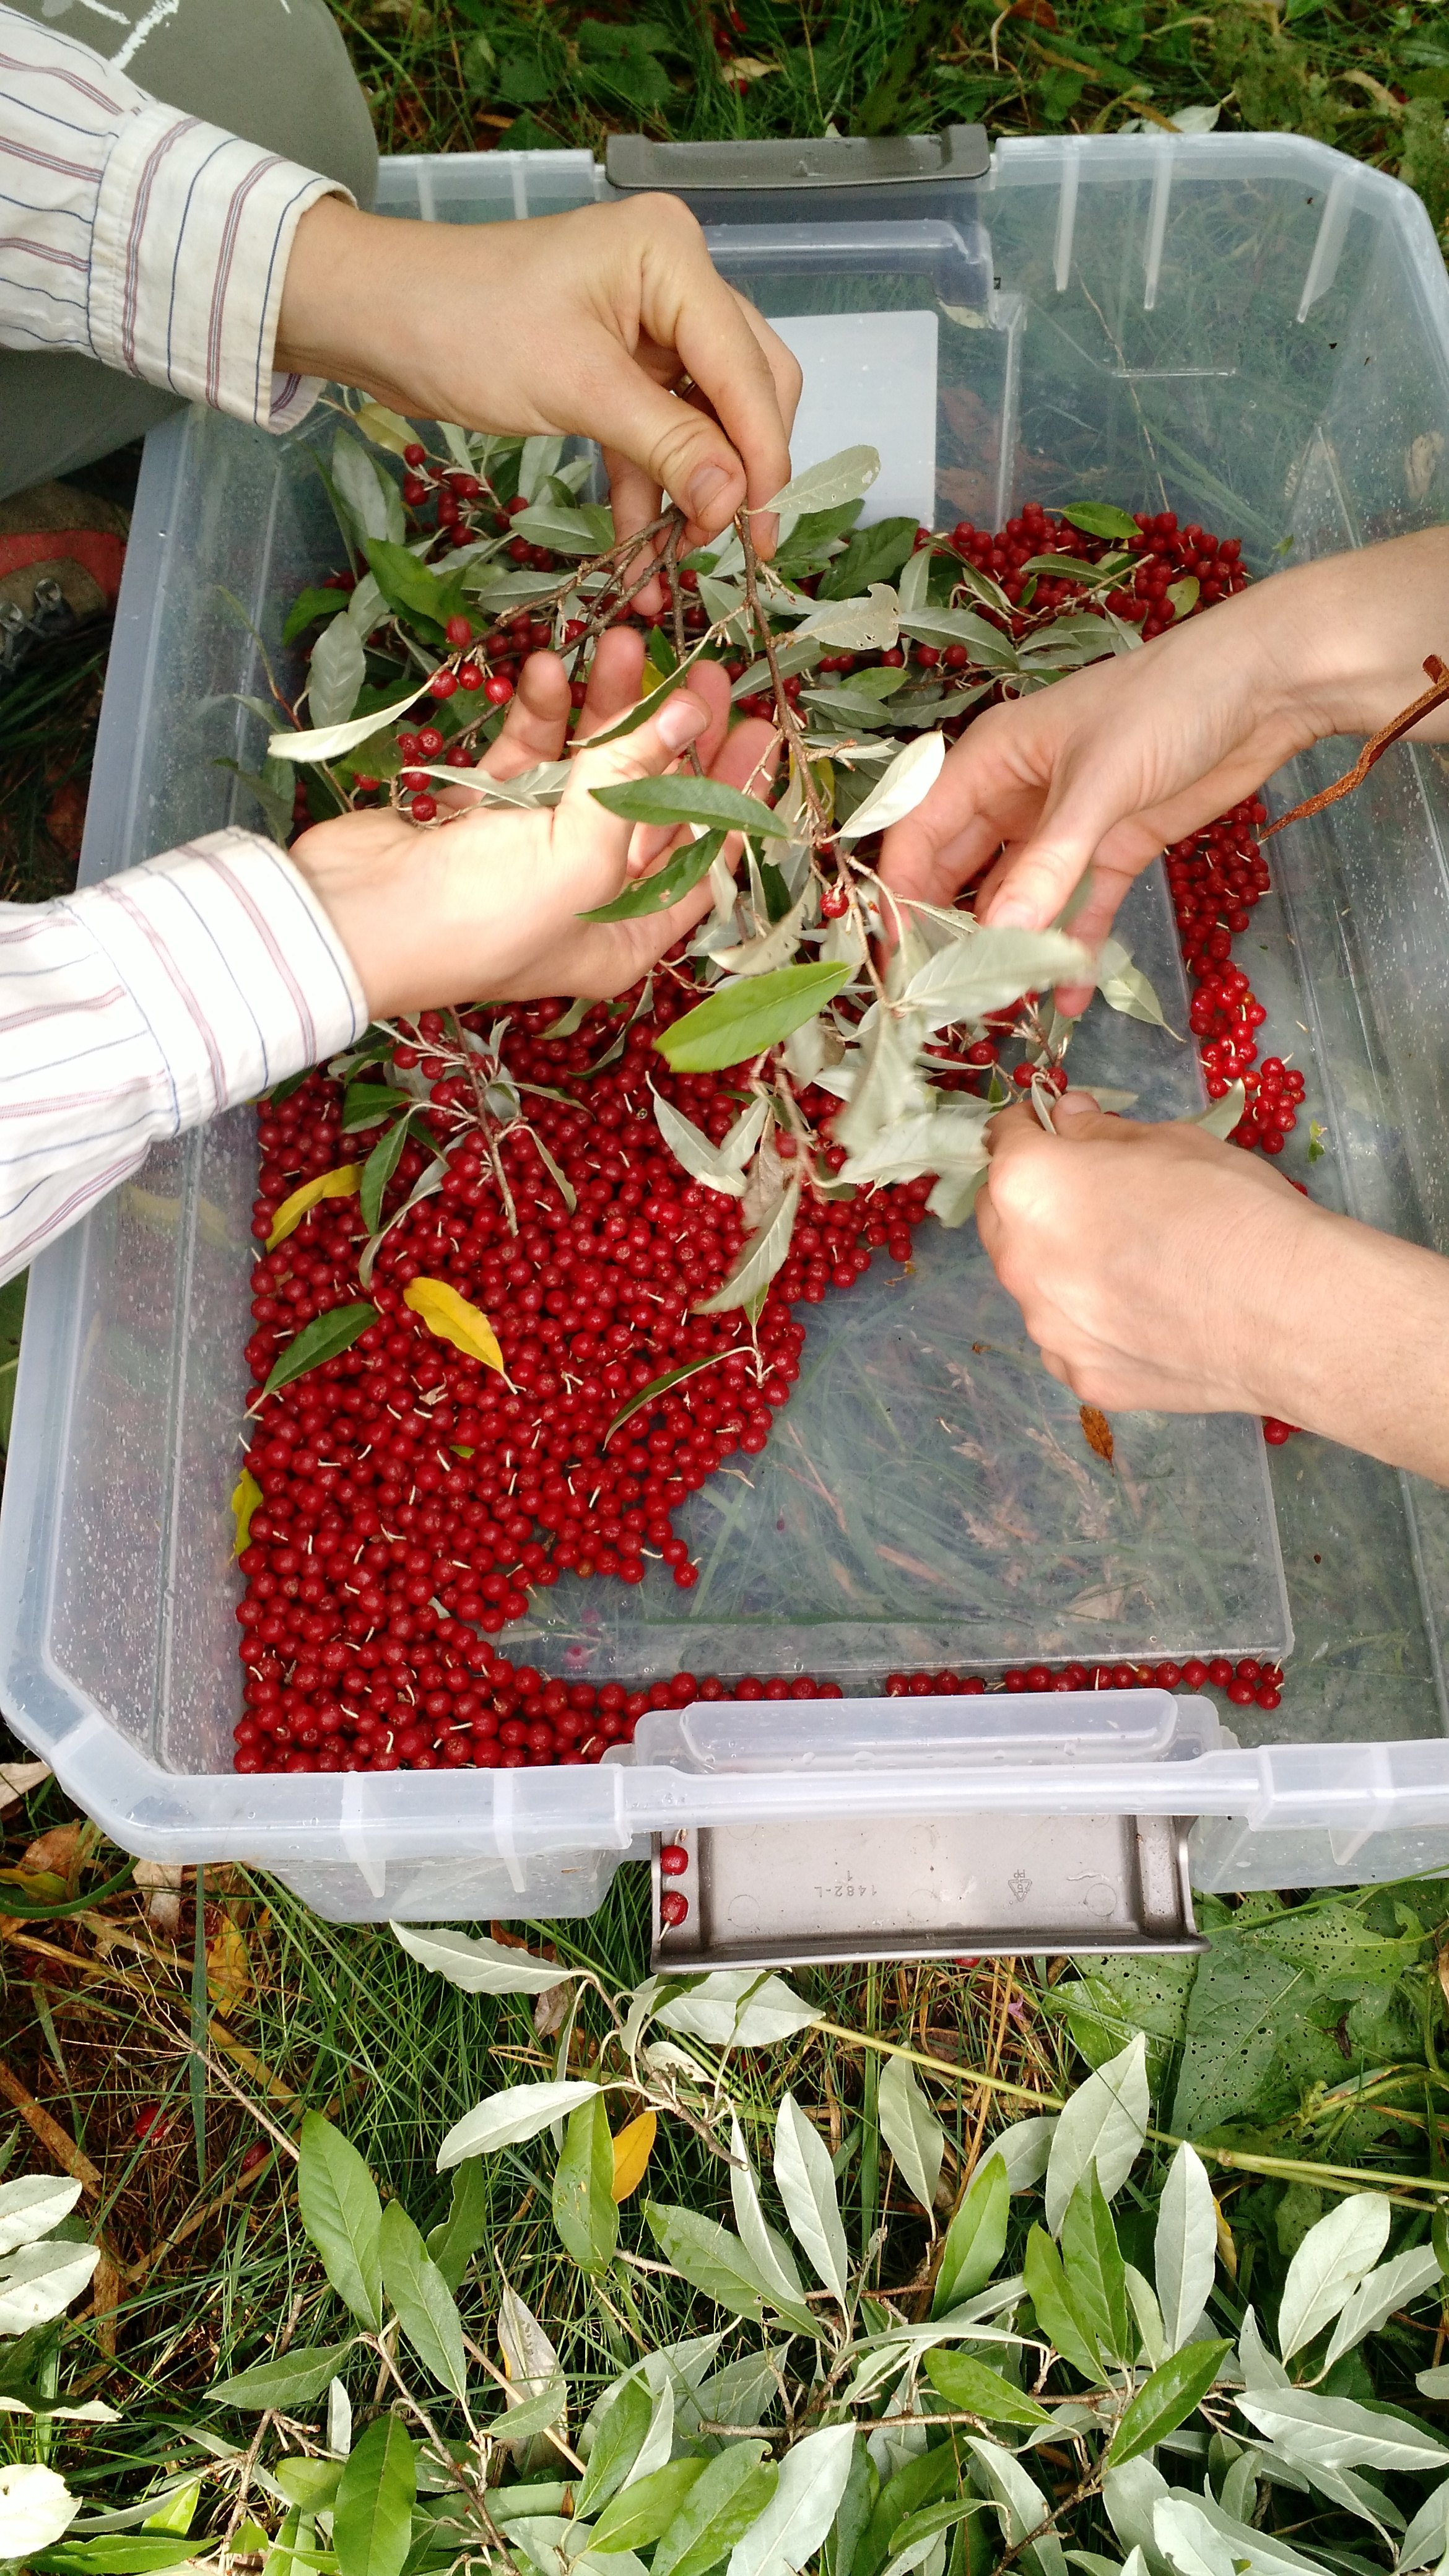 Removing the berries from pruned branches.